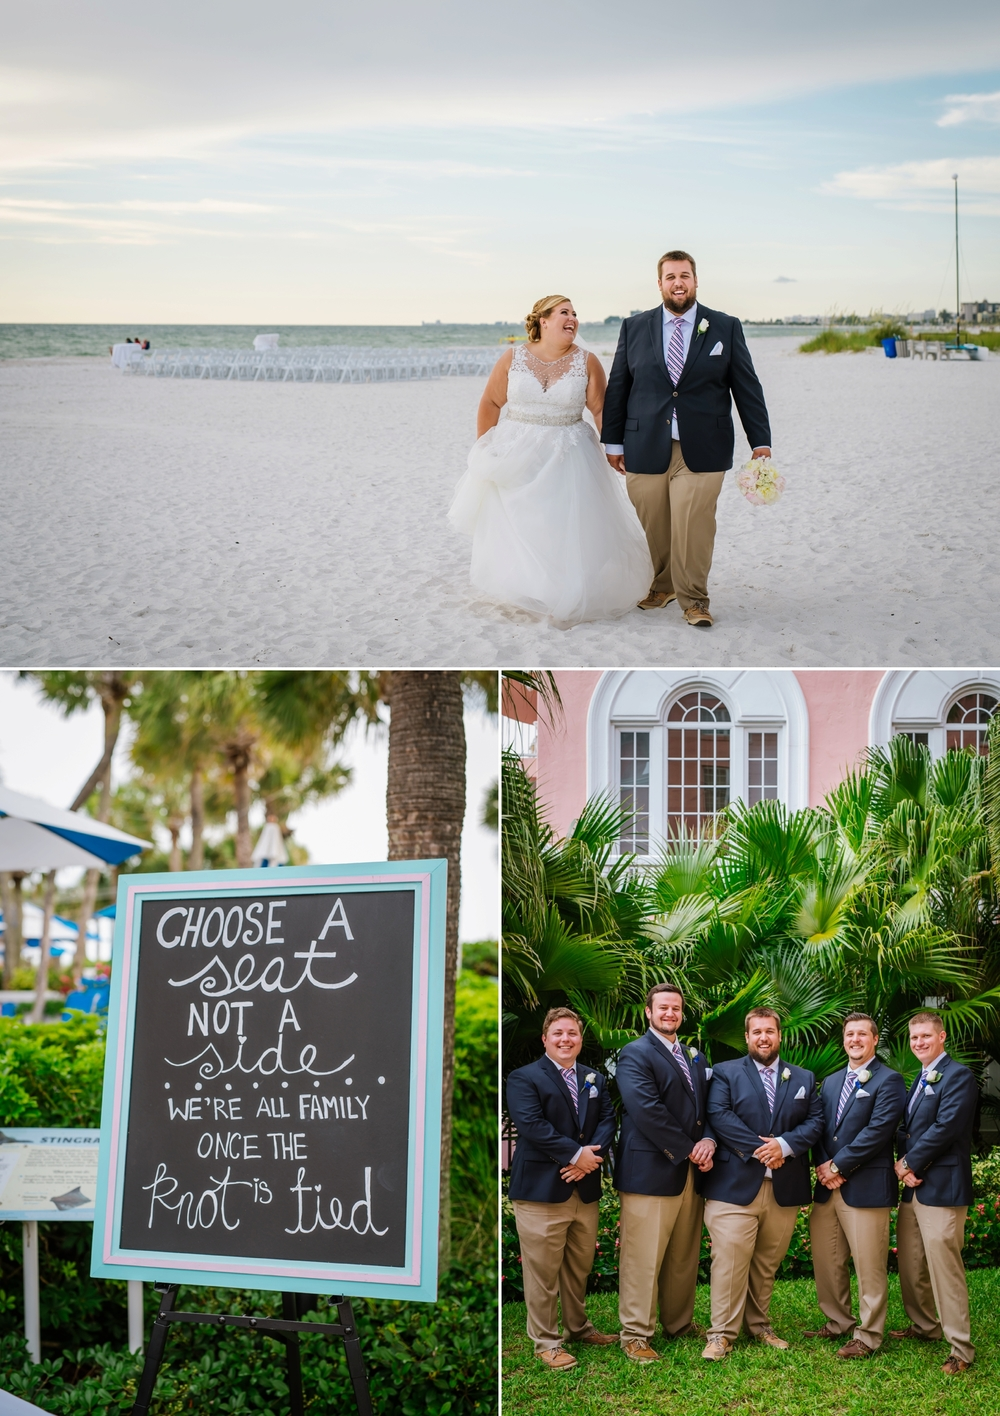 St-pete-wedding-photographer-don-caesar-ashlee-hamon_0021.jpg